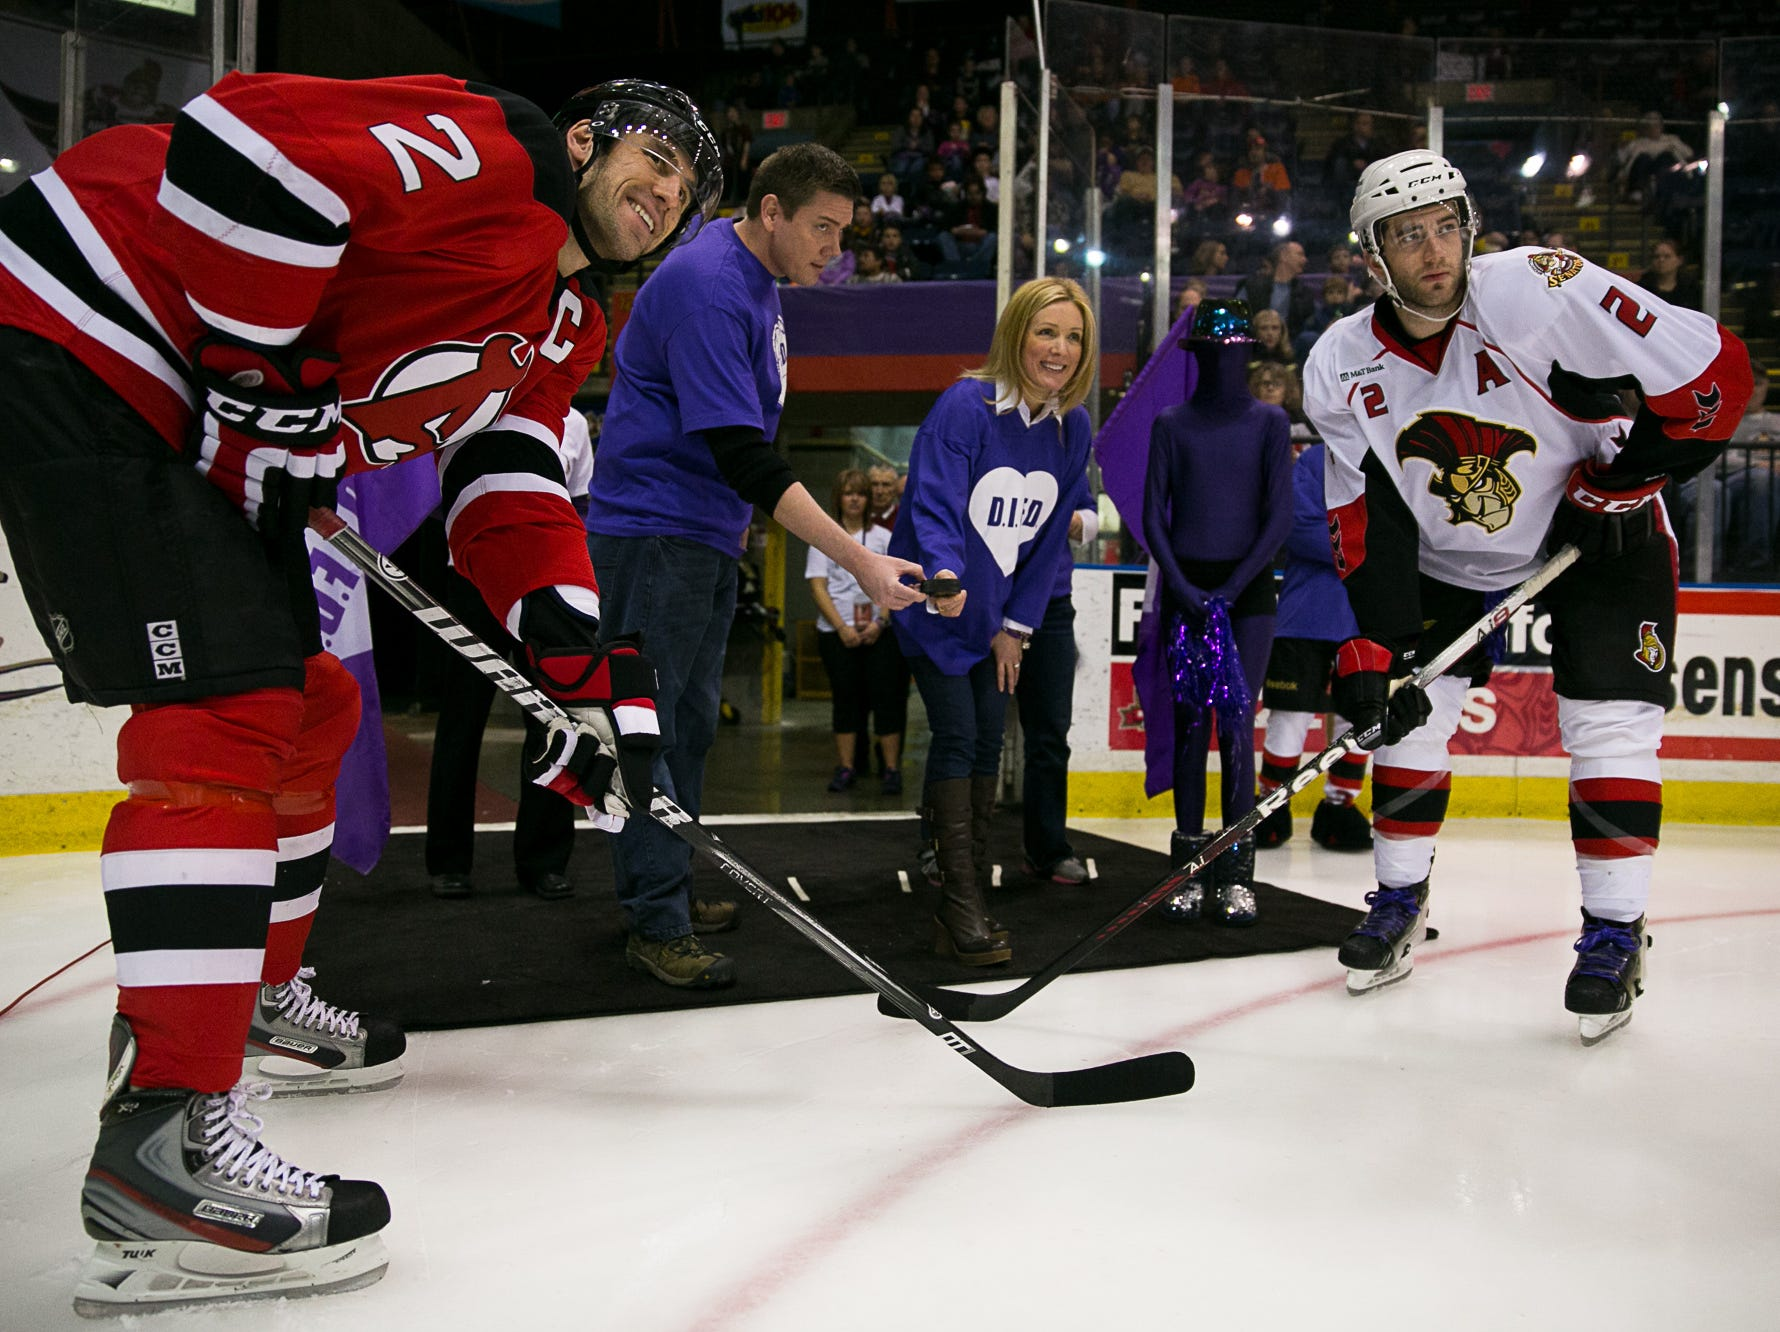 2013: Stephanie Richardson, center, the wife of Binghamton Senators coach Luke Richardson, helps drop the puck for the ceremonial faceoff Sunday night between Binghamton's Eric Gryba, right, and Albany's Jay Leach in February 2013.